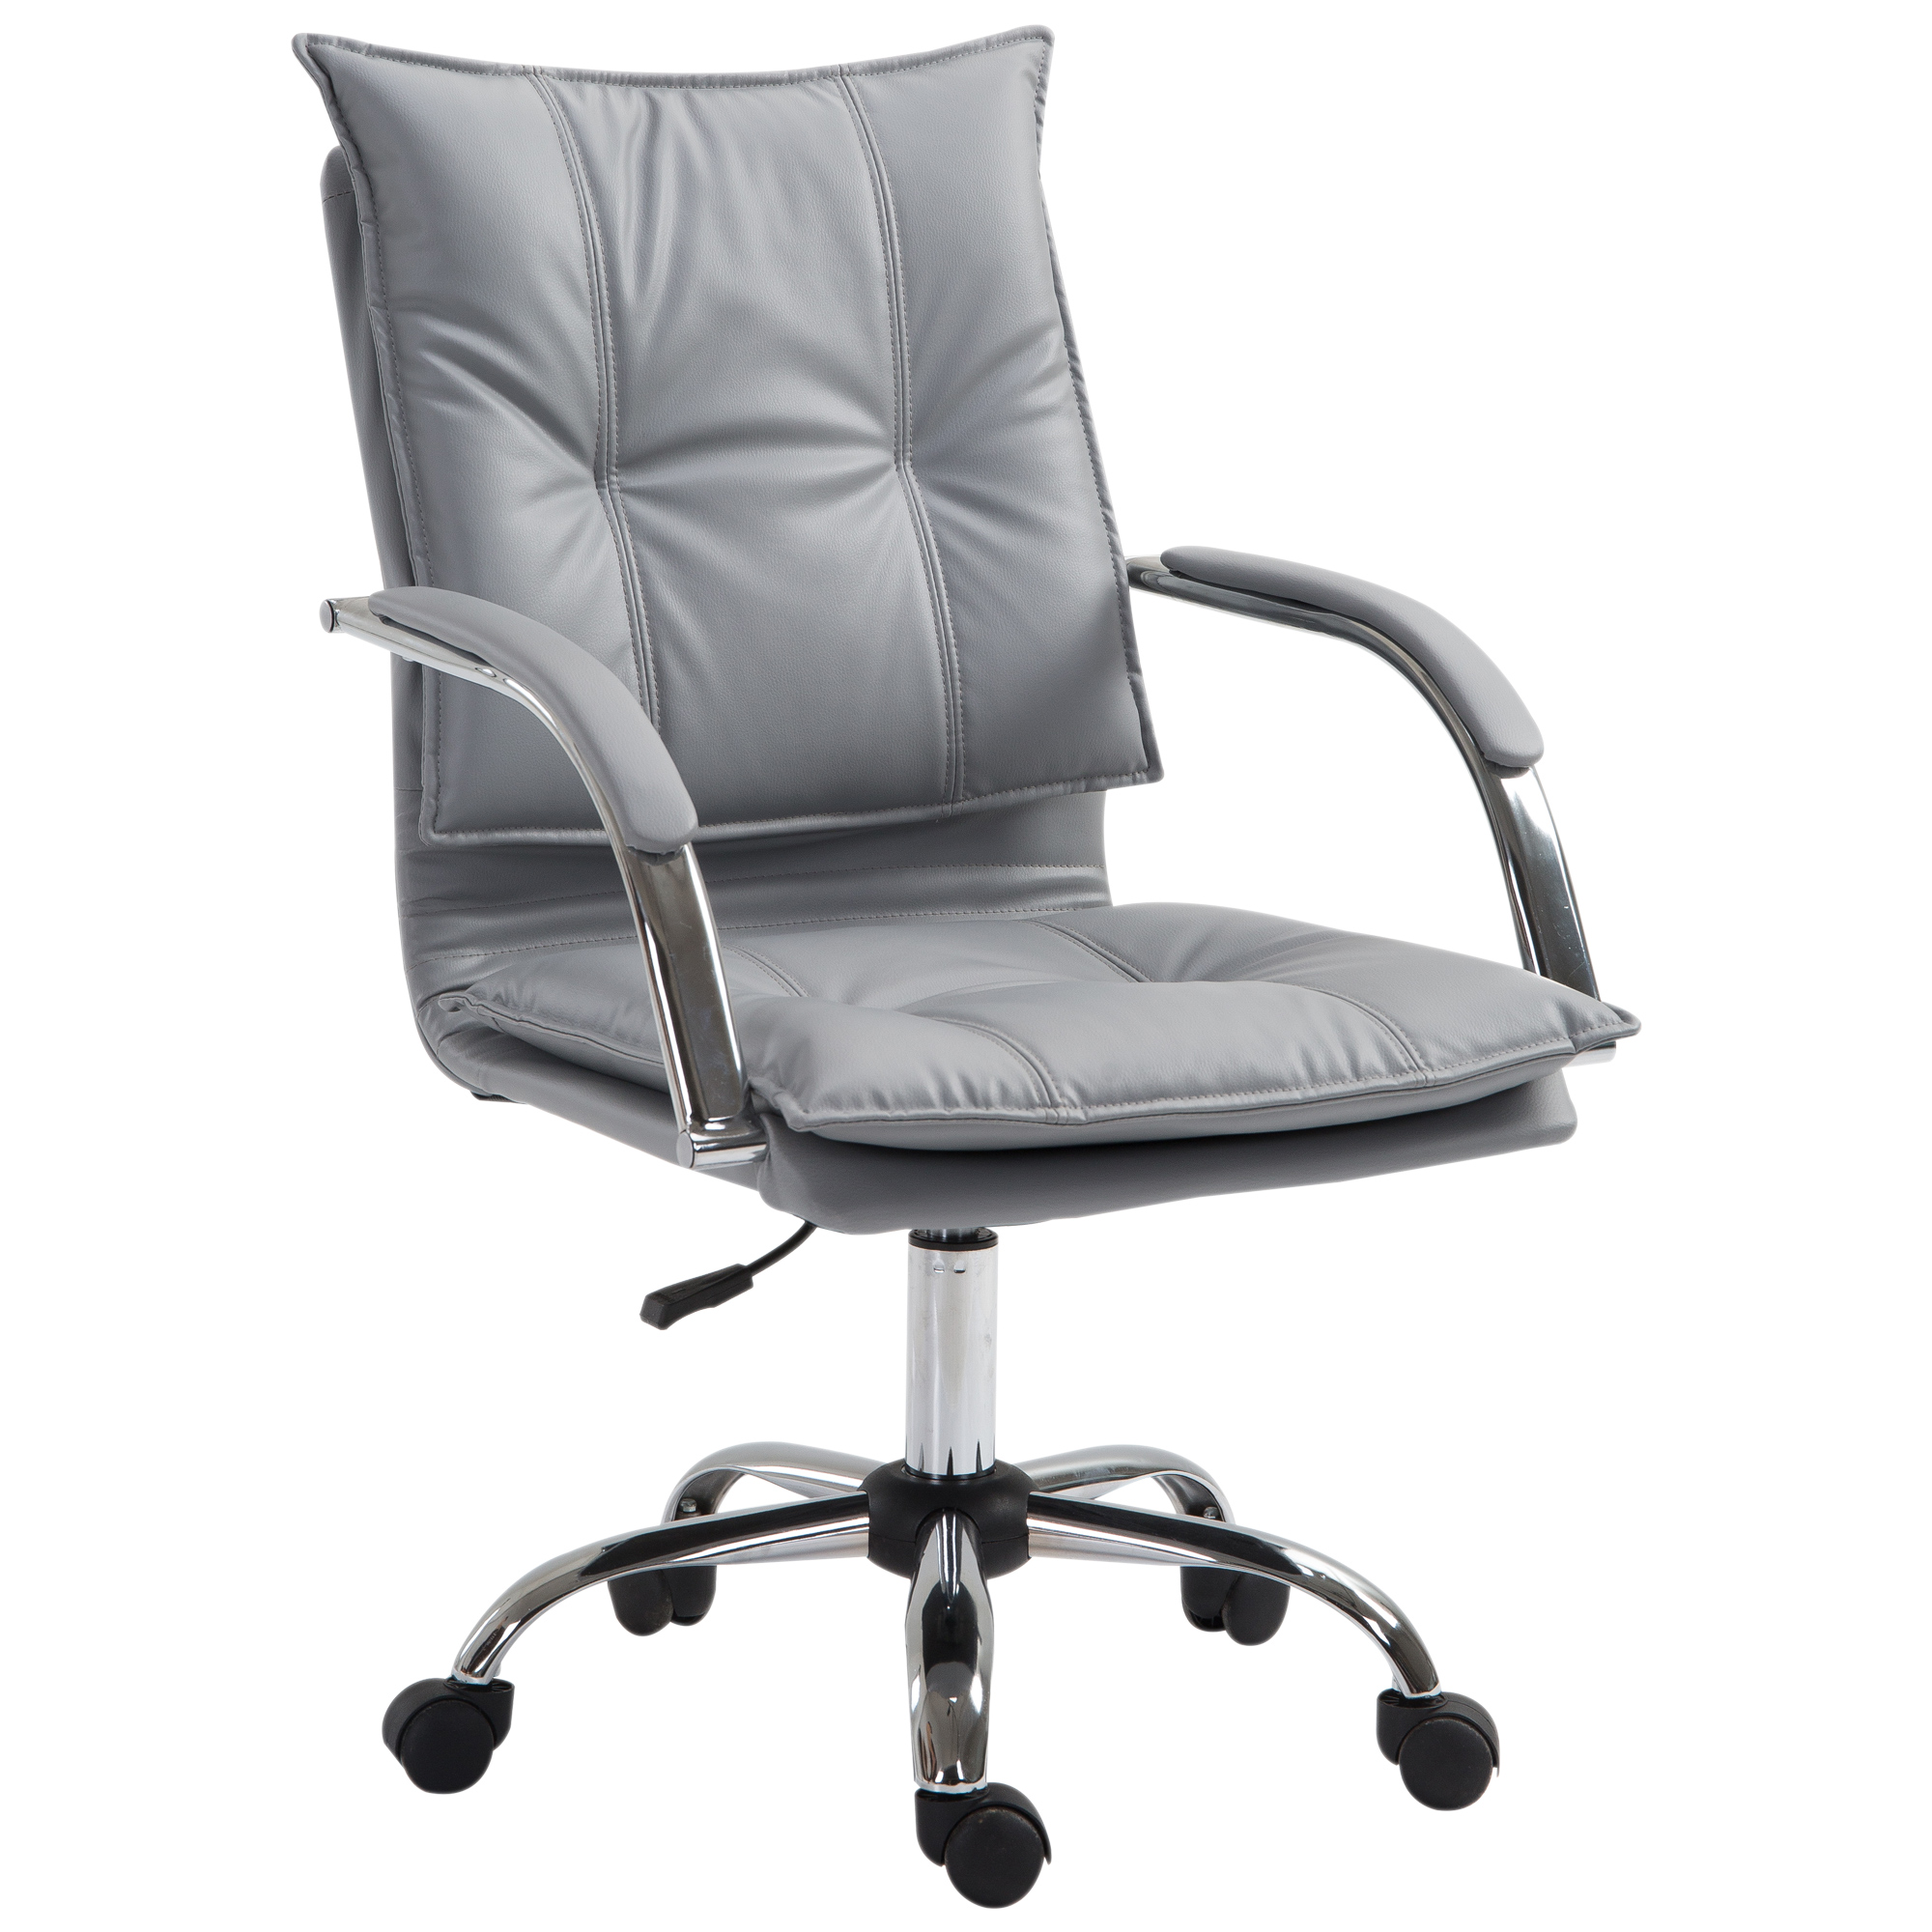 Vinsetto Lounge Chair Modern Design Padded Adjustable Height Office PU Leather Pp Cotton 64x57x91- 101 Cm Gray